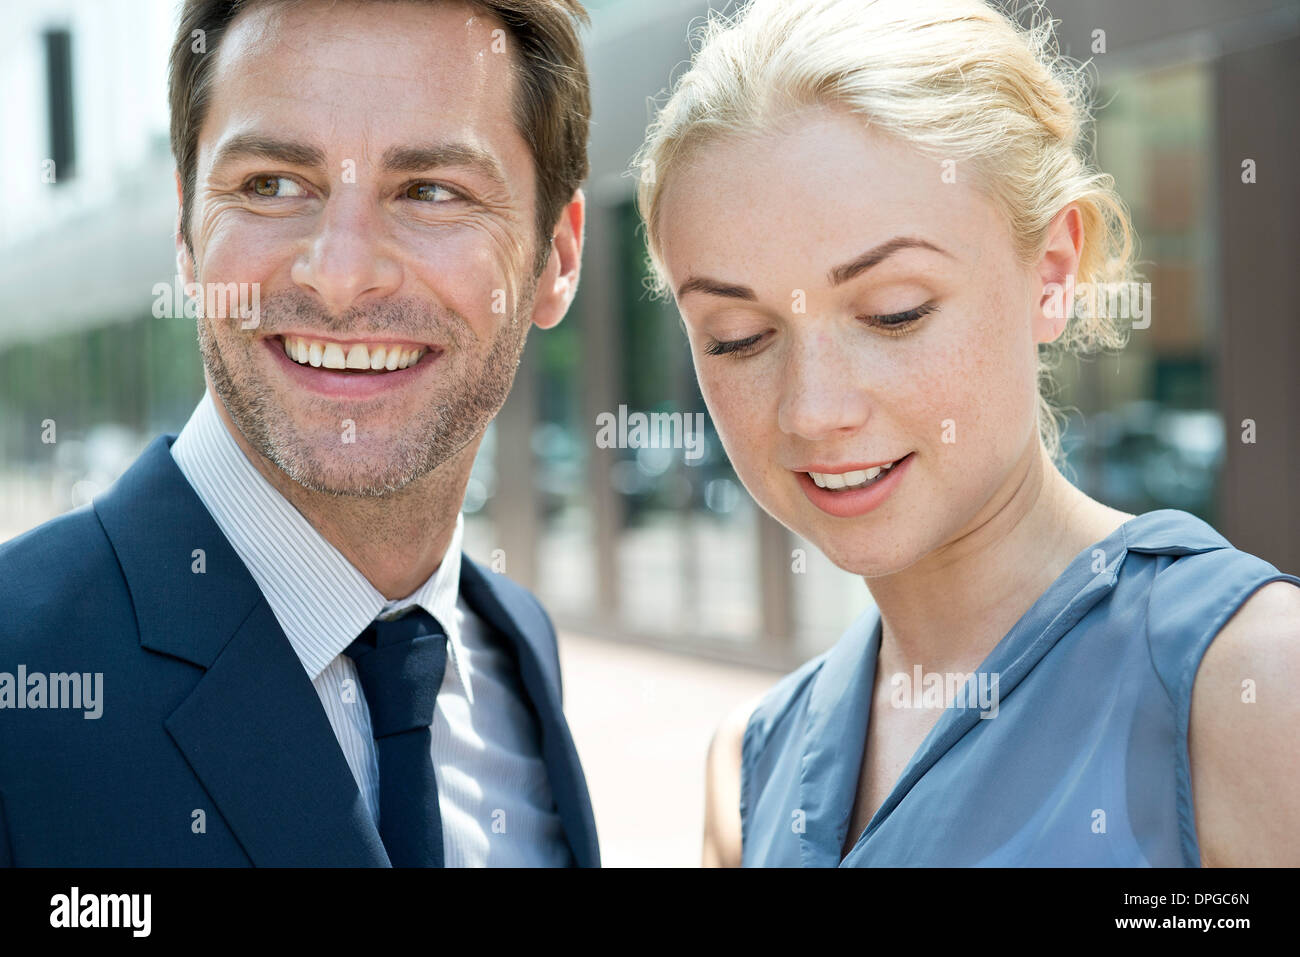 Real estate agent with potential buyer - Stock Image